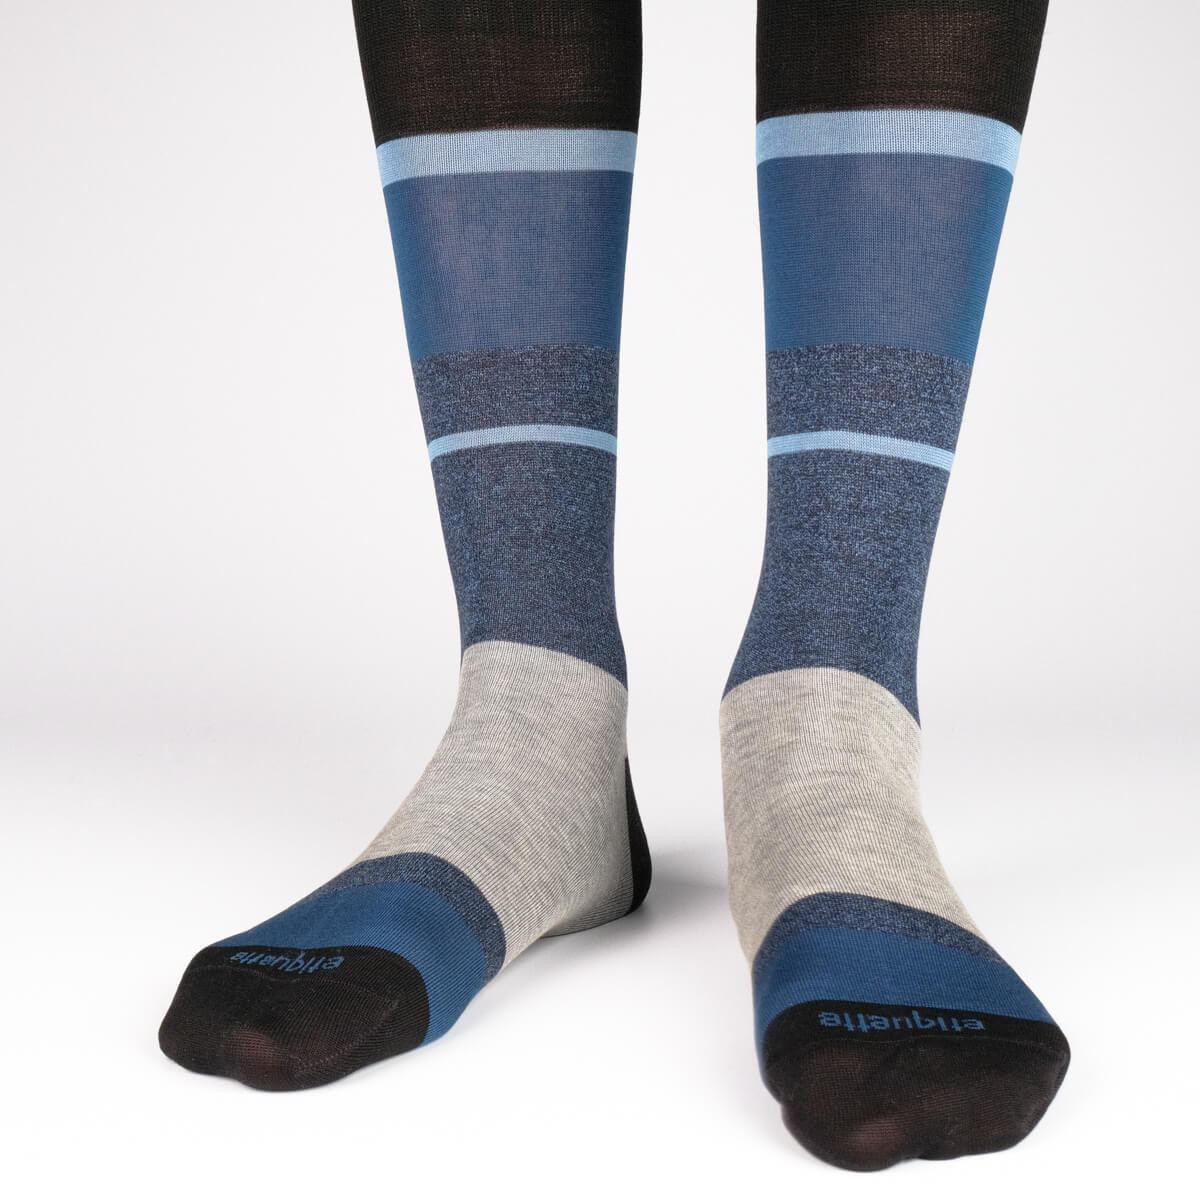 Mens Socks - Shades of Indigo Gift Box - Blue⎪Etiquette Clothiers